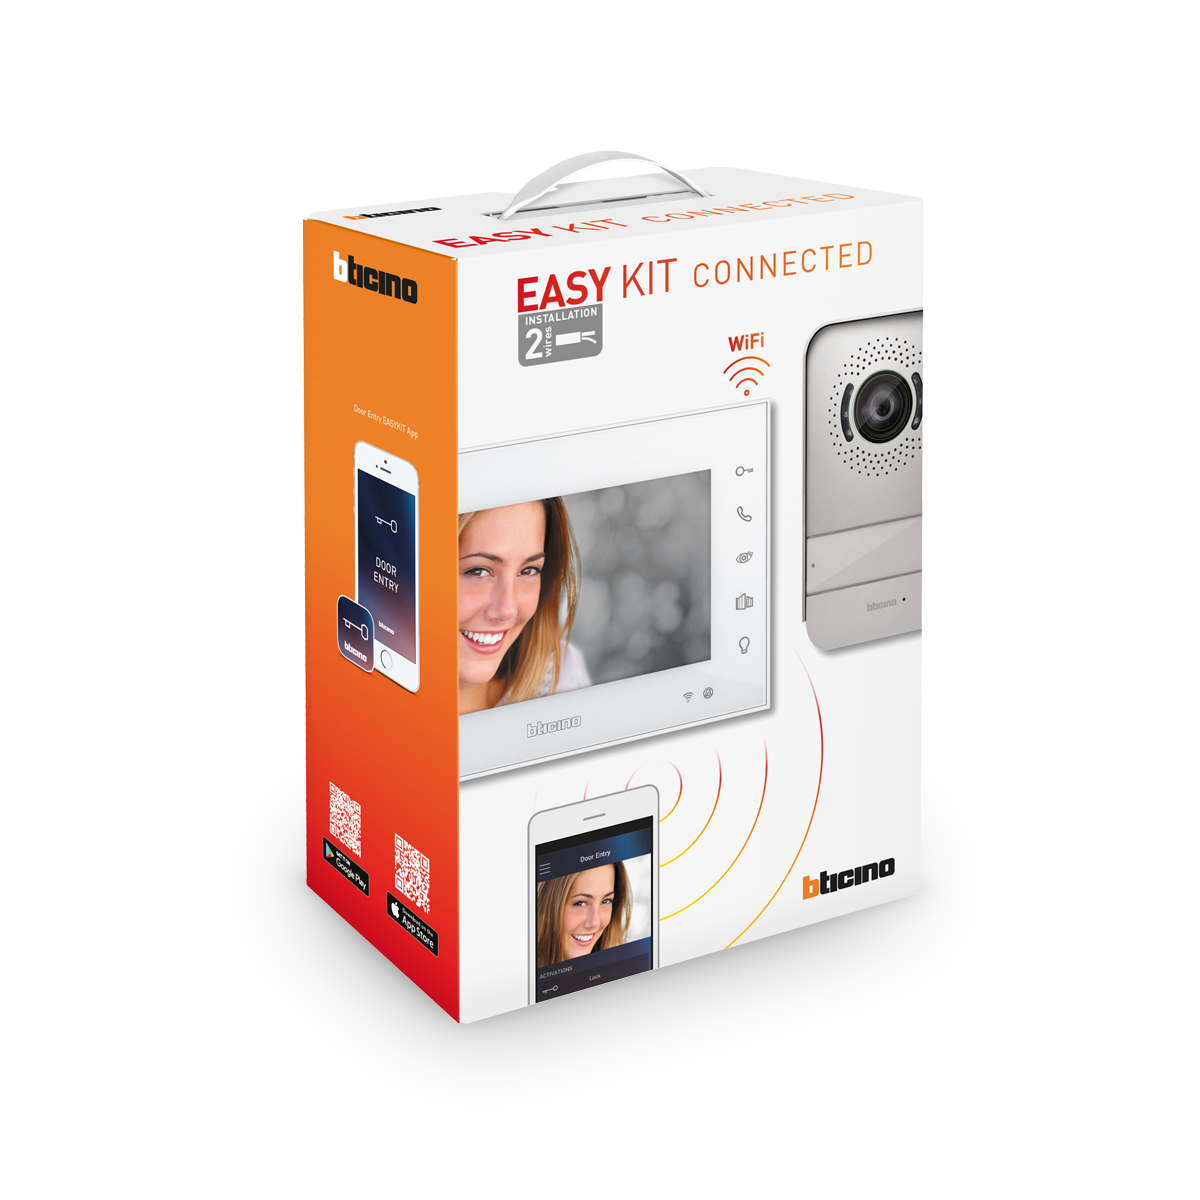 Videocitofono WiFi EASY KIT CONNECTED - BTICINO